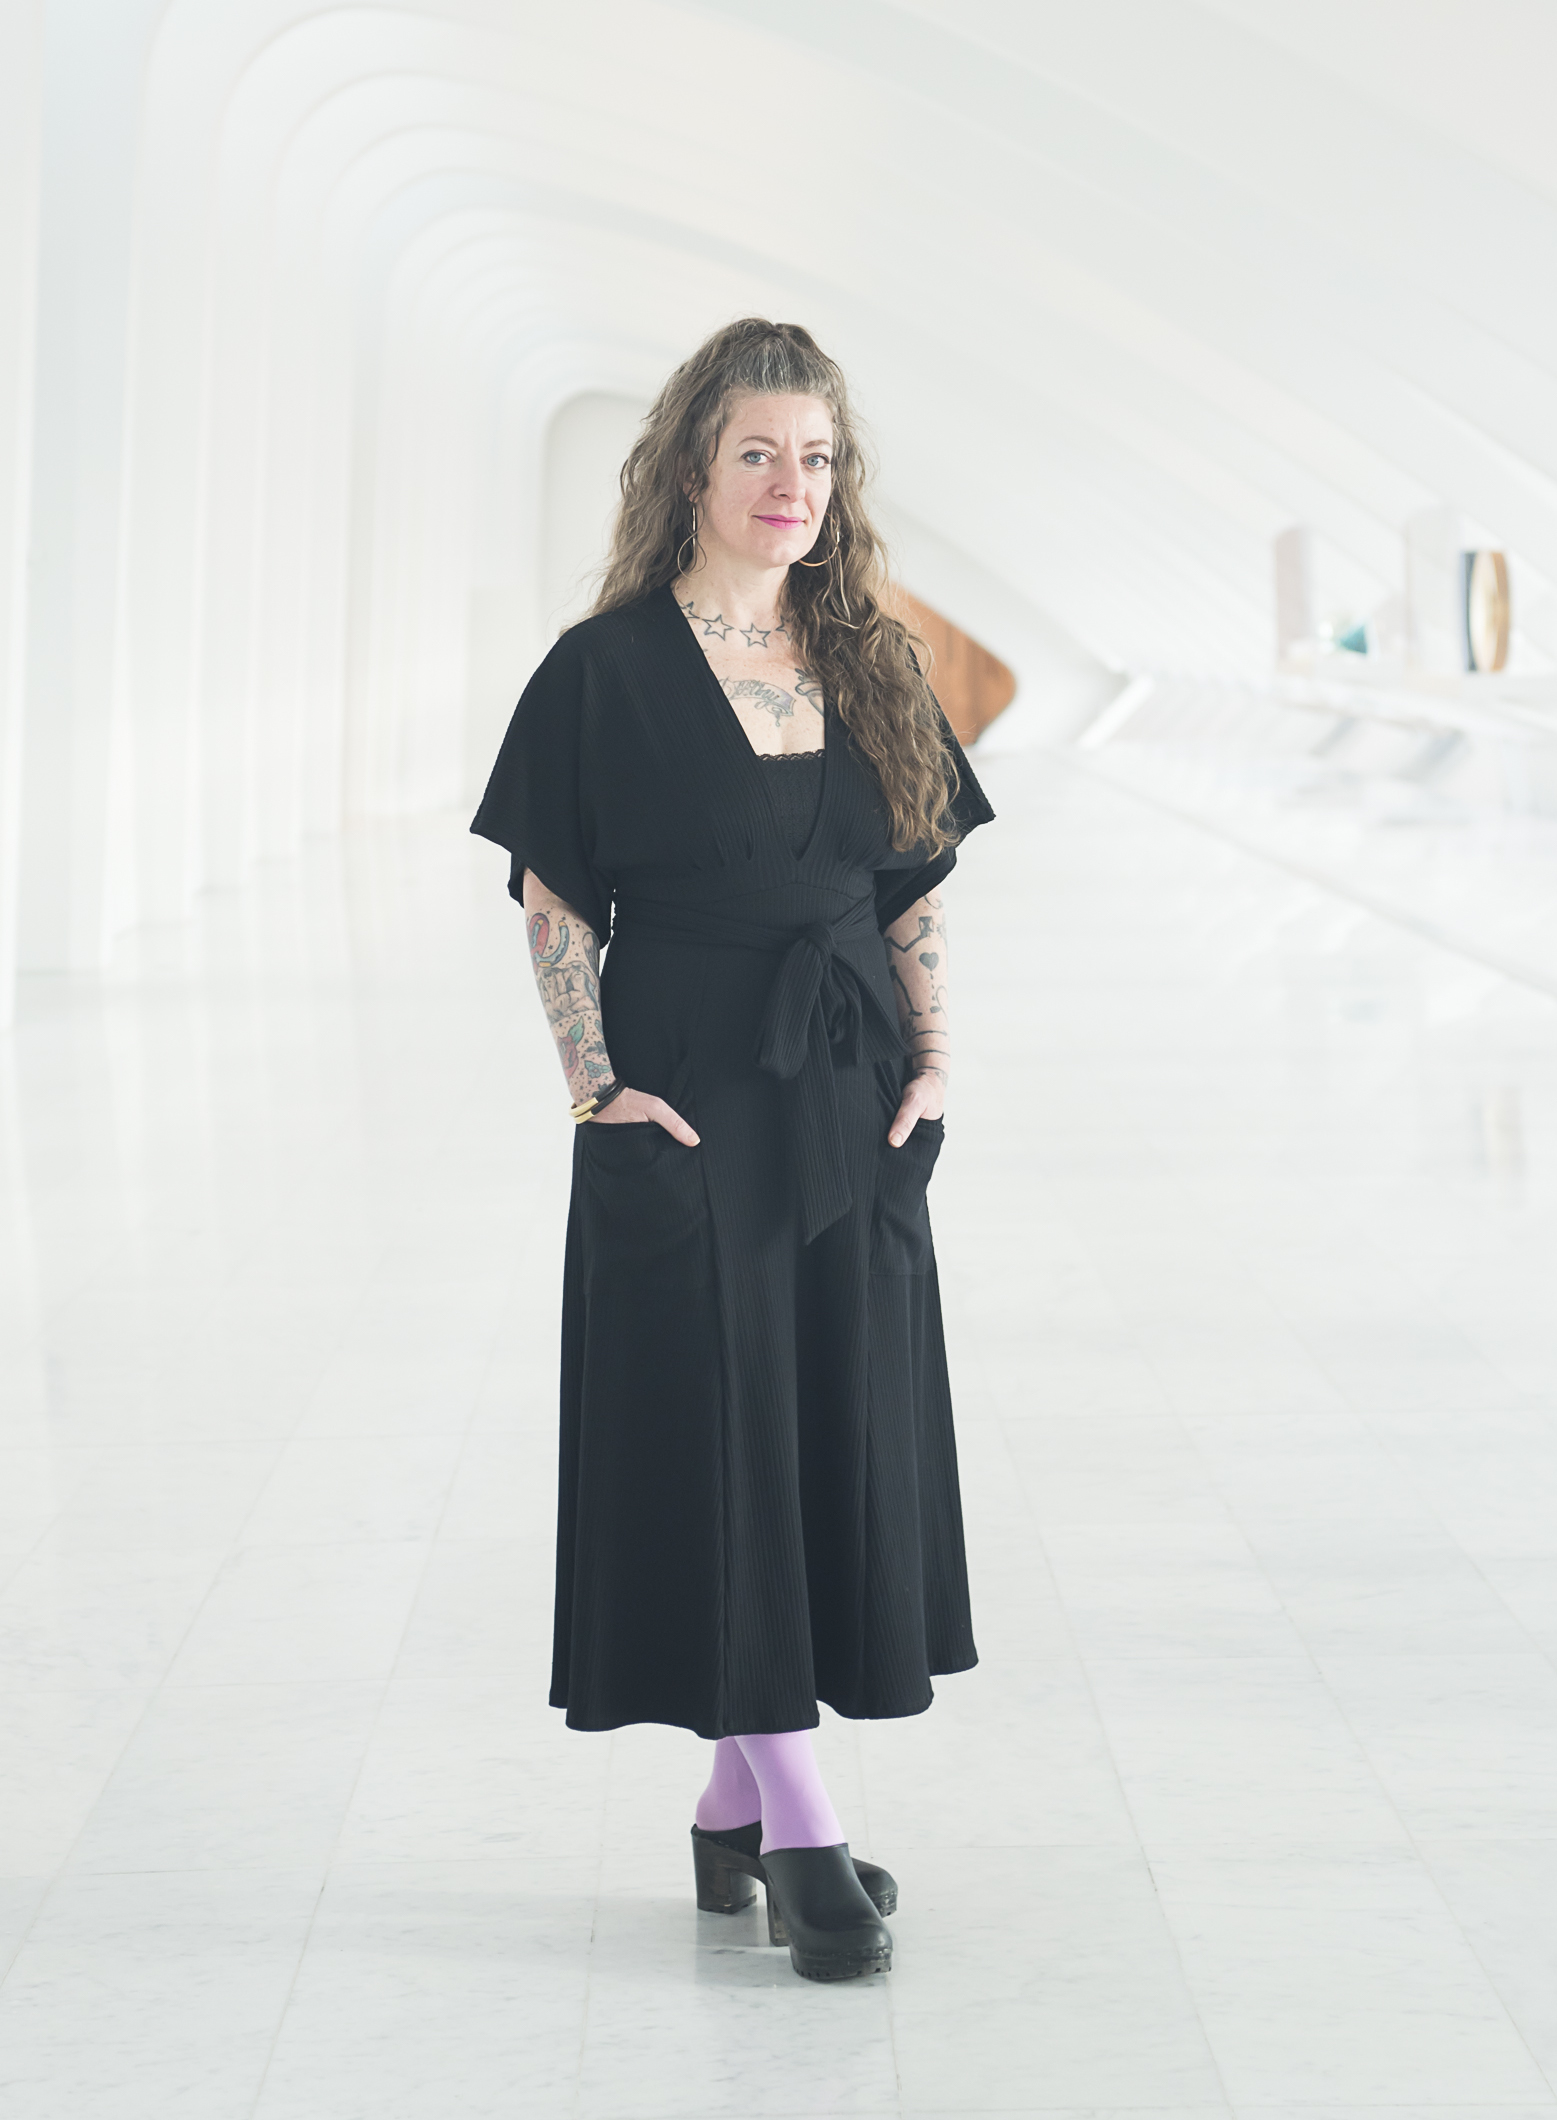 Faythe Levine to discuss Kiki Smith as part of Sculpture Milwaukee lecture series